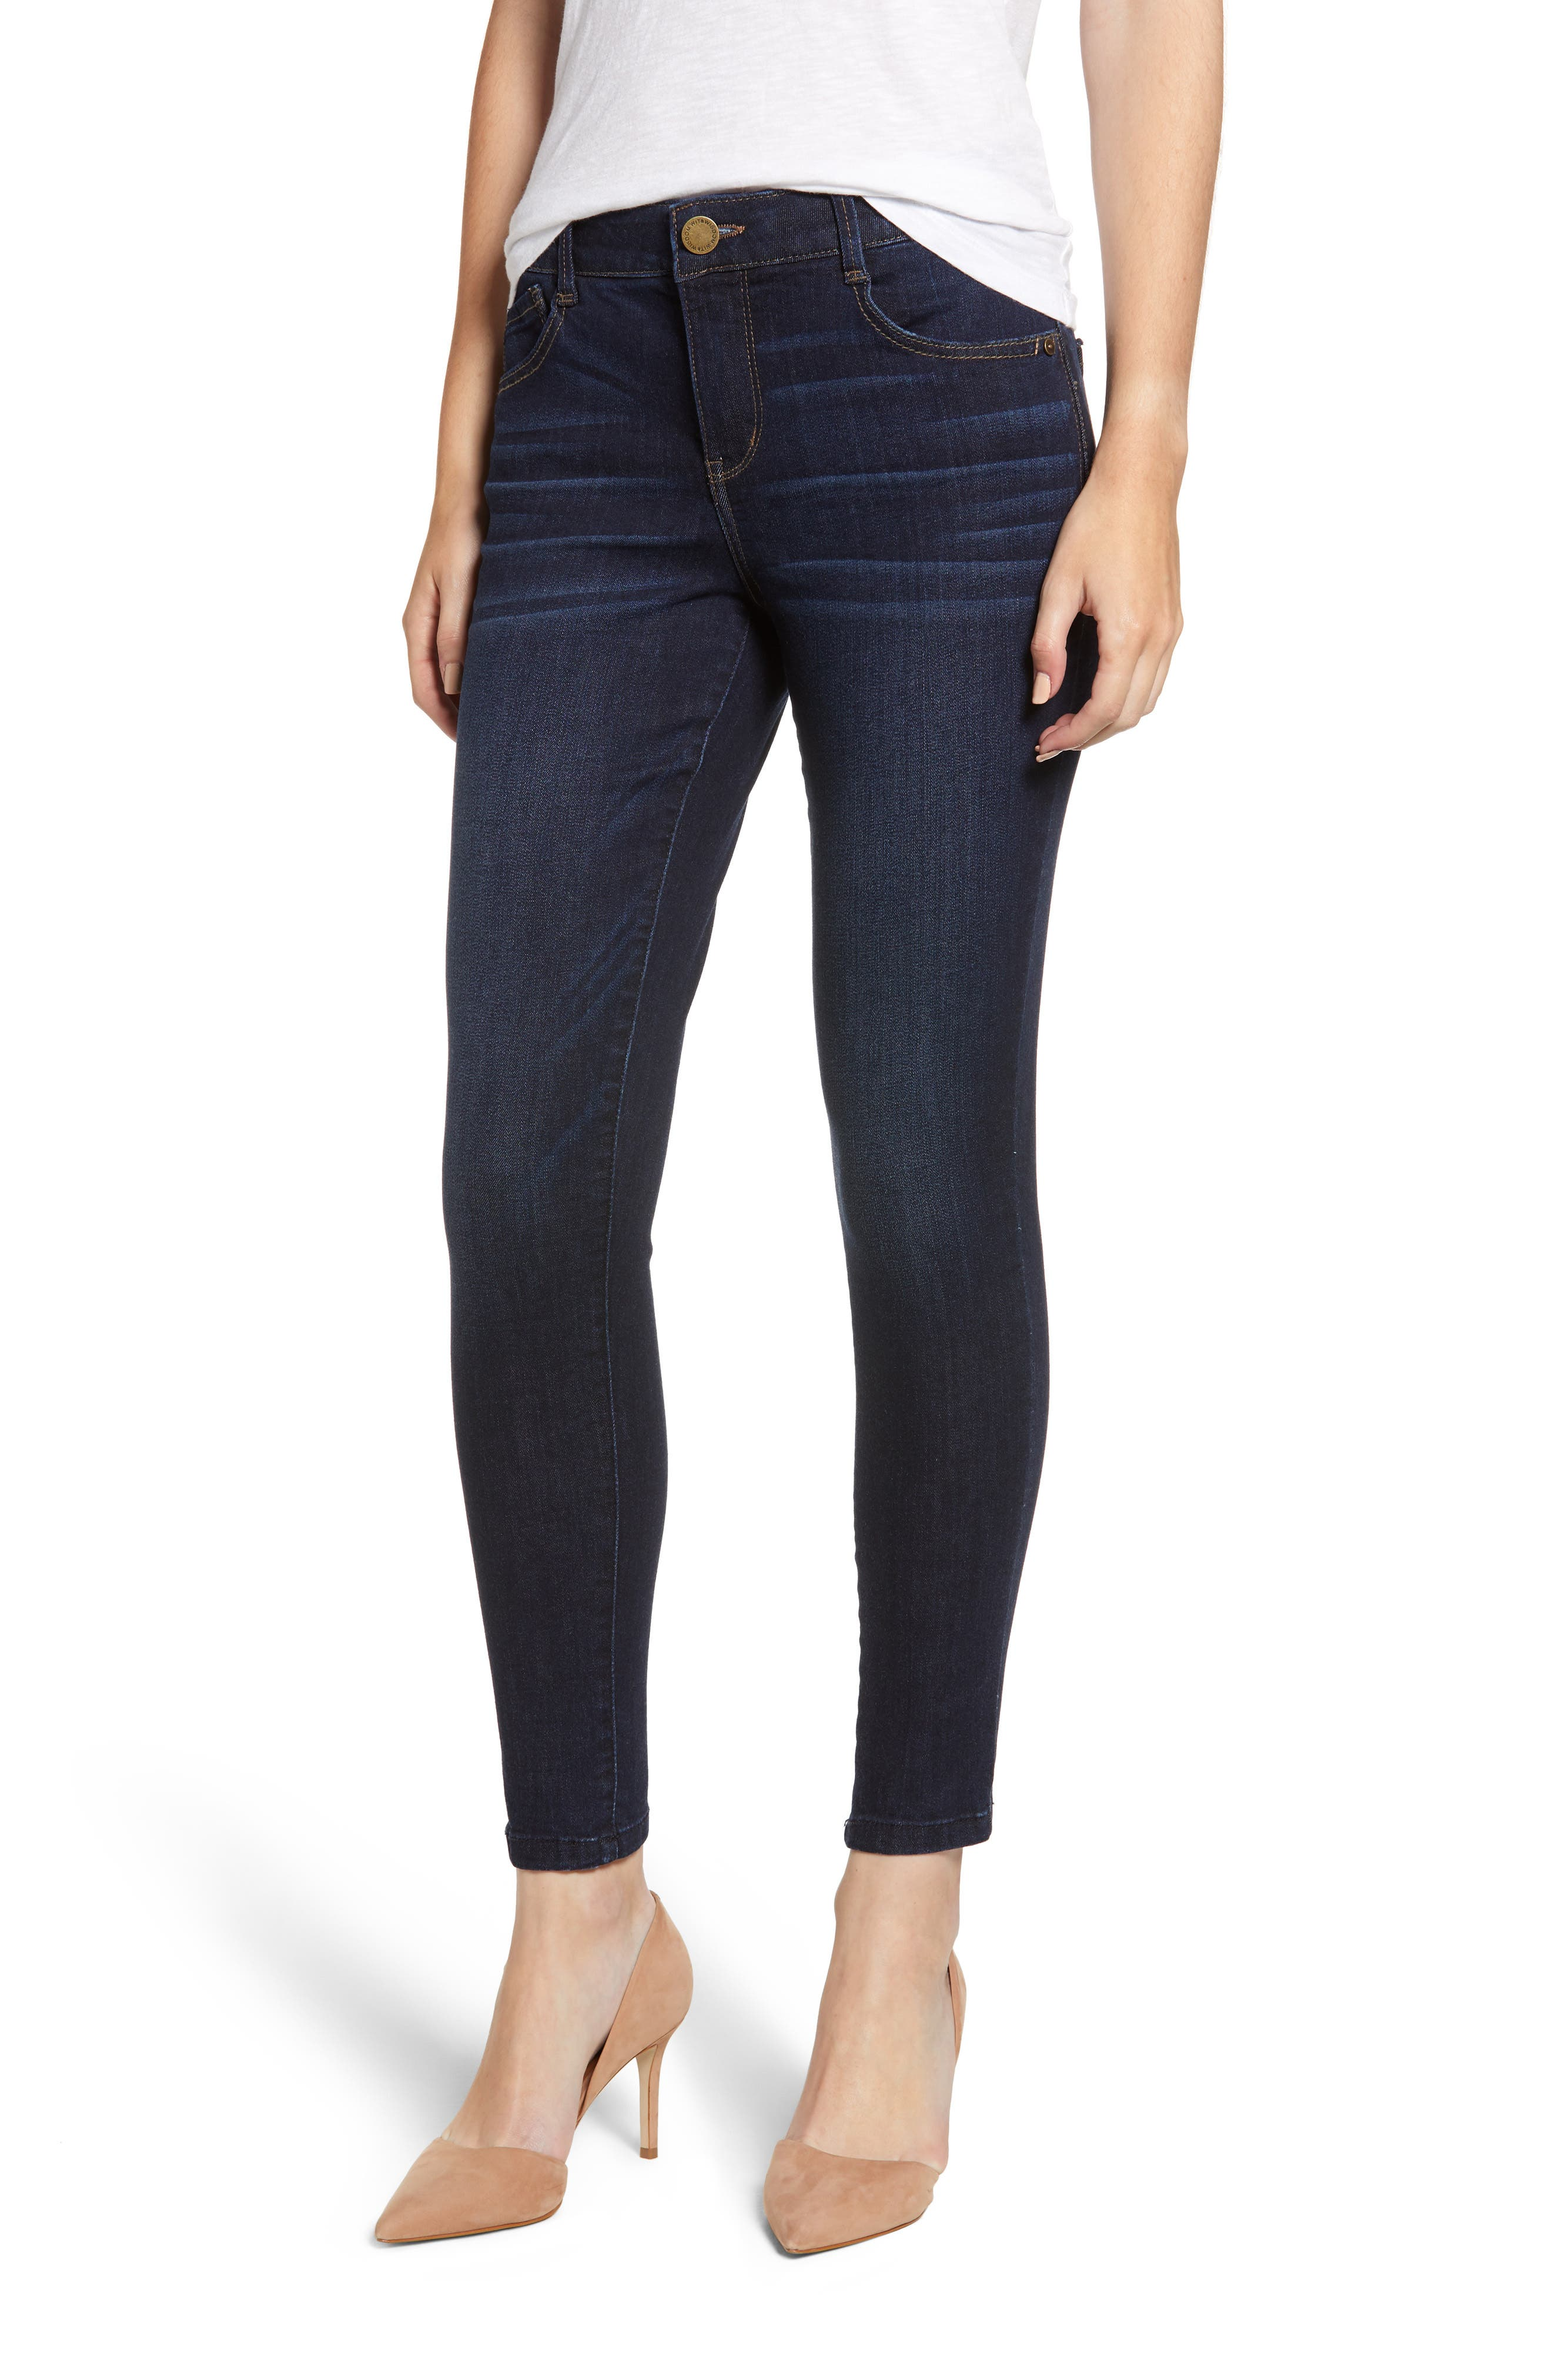 WIT & WISDOM, Ab-solution High Waist Modern Skinny Ankle Jeans, Main thumbnail 1, color, INDIGO